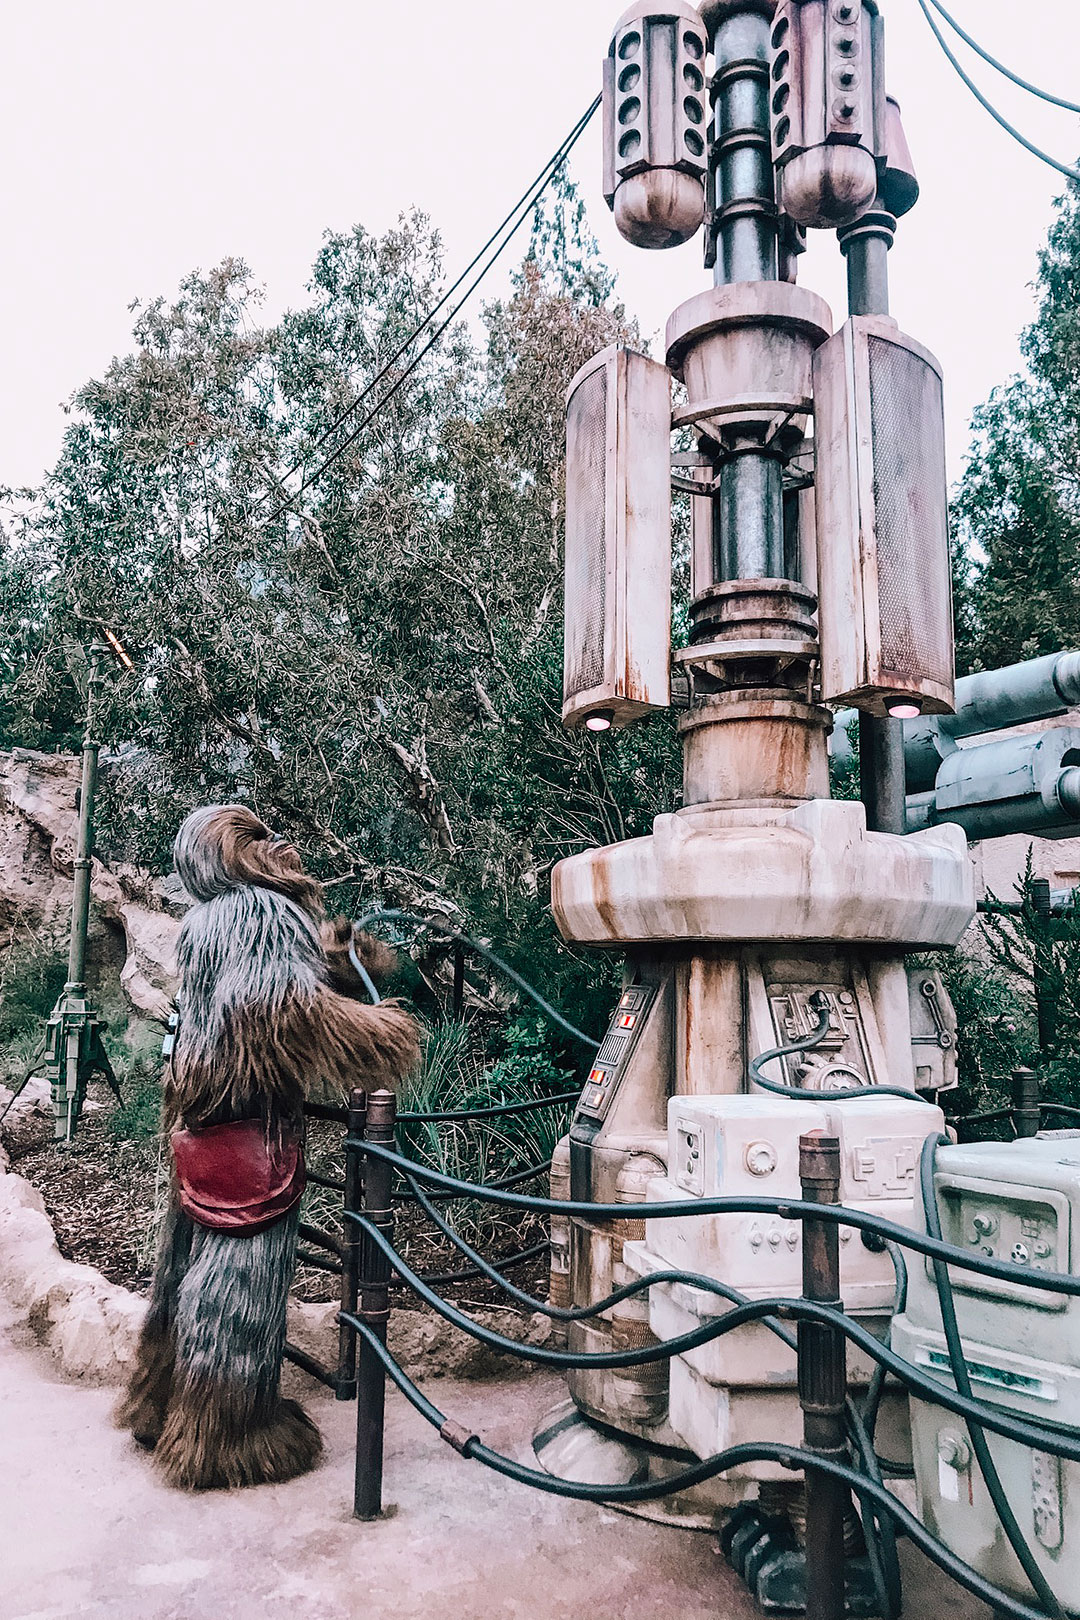 Star Wars Park - First Timer's Guide to Star Wars Galaxy's Edge in Disneyland